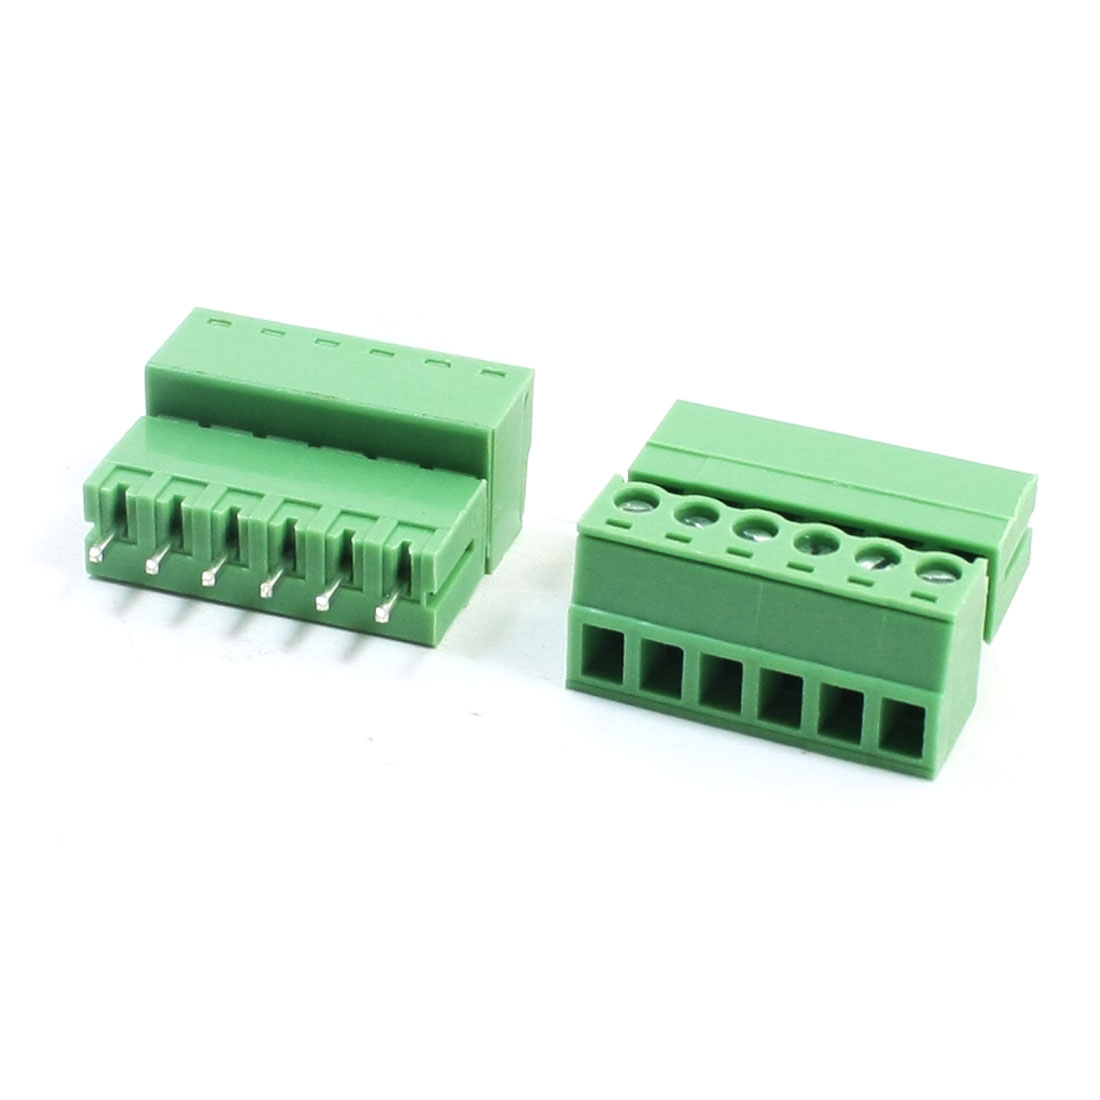 2Pcs 300V 3A 3.81mm Pitch 6-Pin Through Hole Pluggable Type PCB Screw Terminal Barrier Block Connector for 22-16AWG Wire